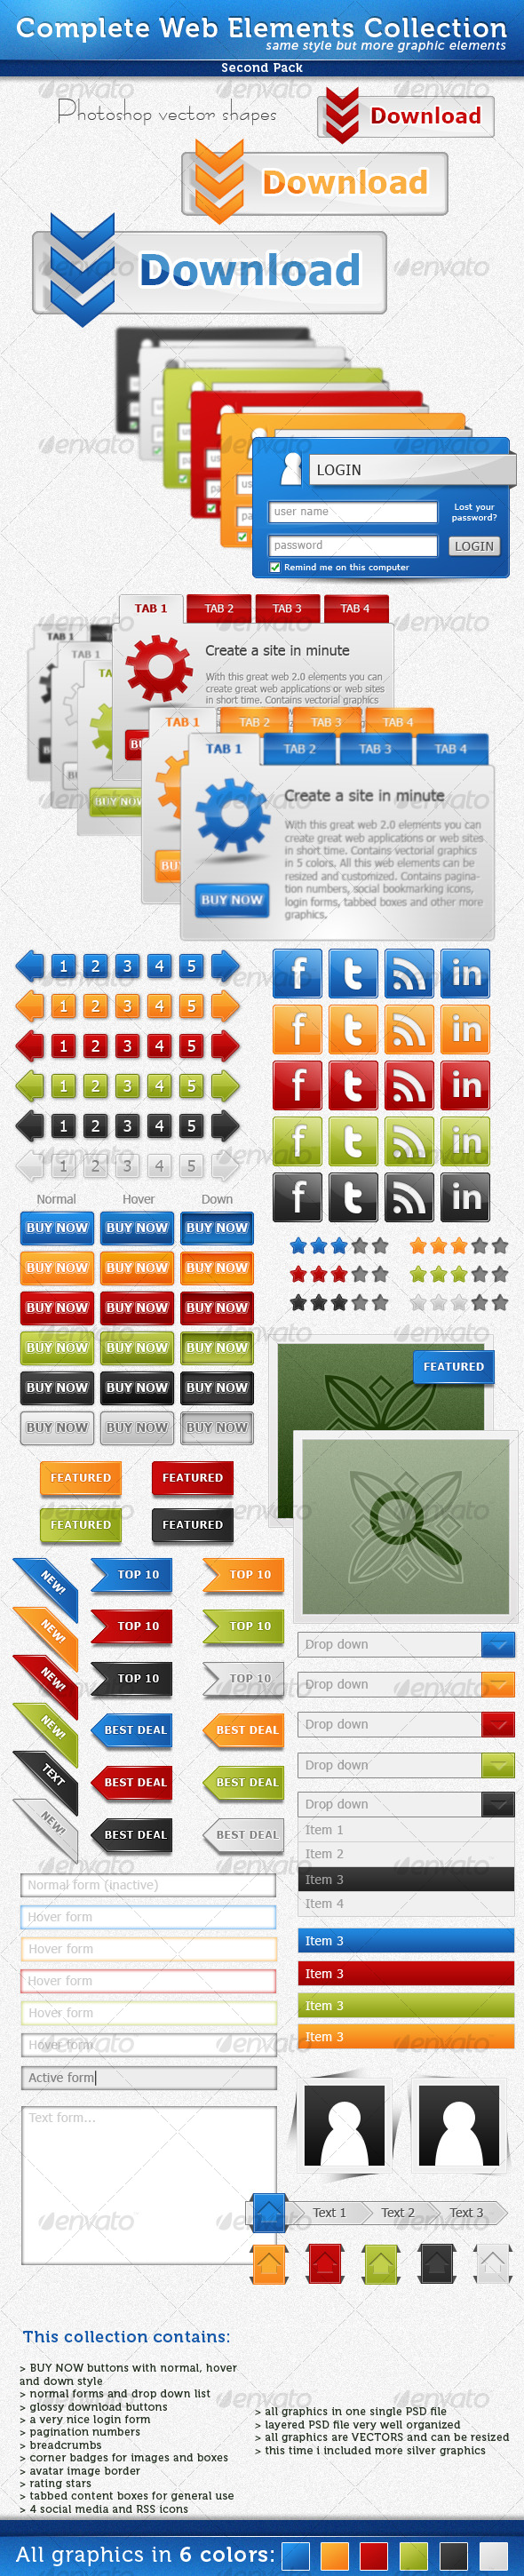 Complete Web Elements Collection - Pack2 - Miscellaneous Web Elements